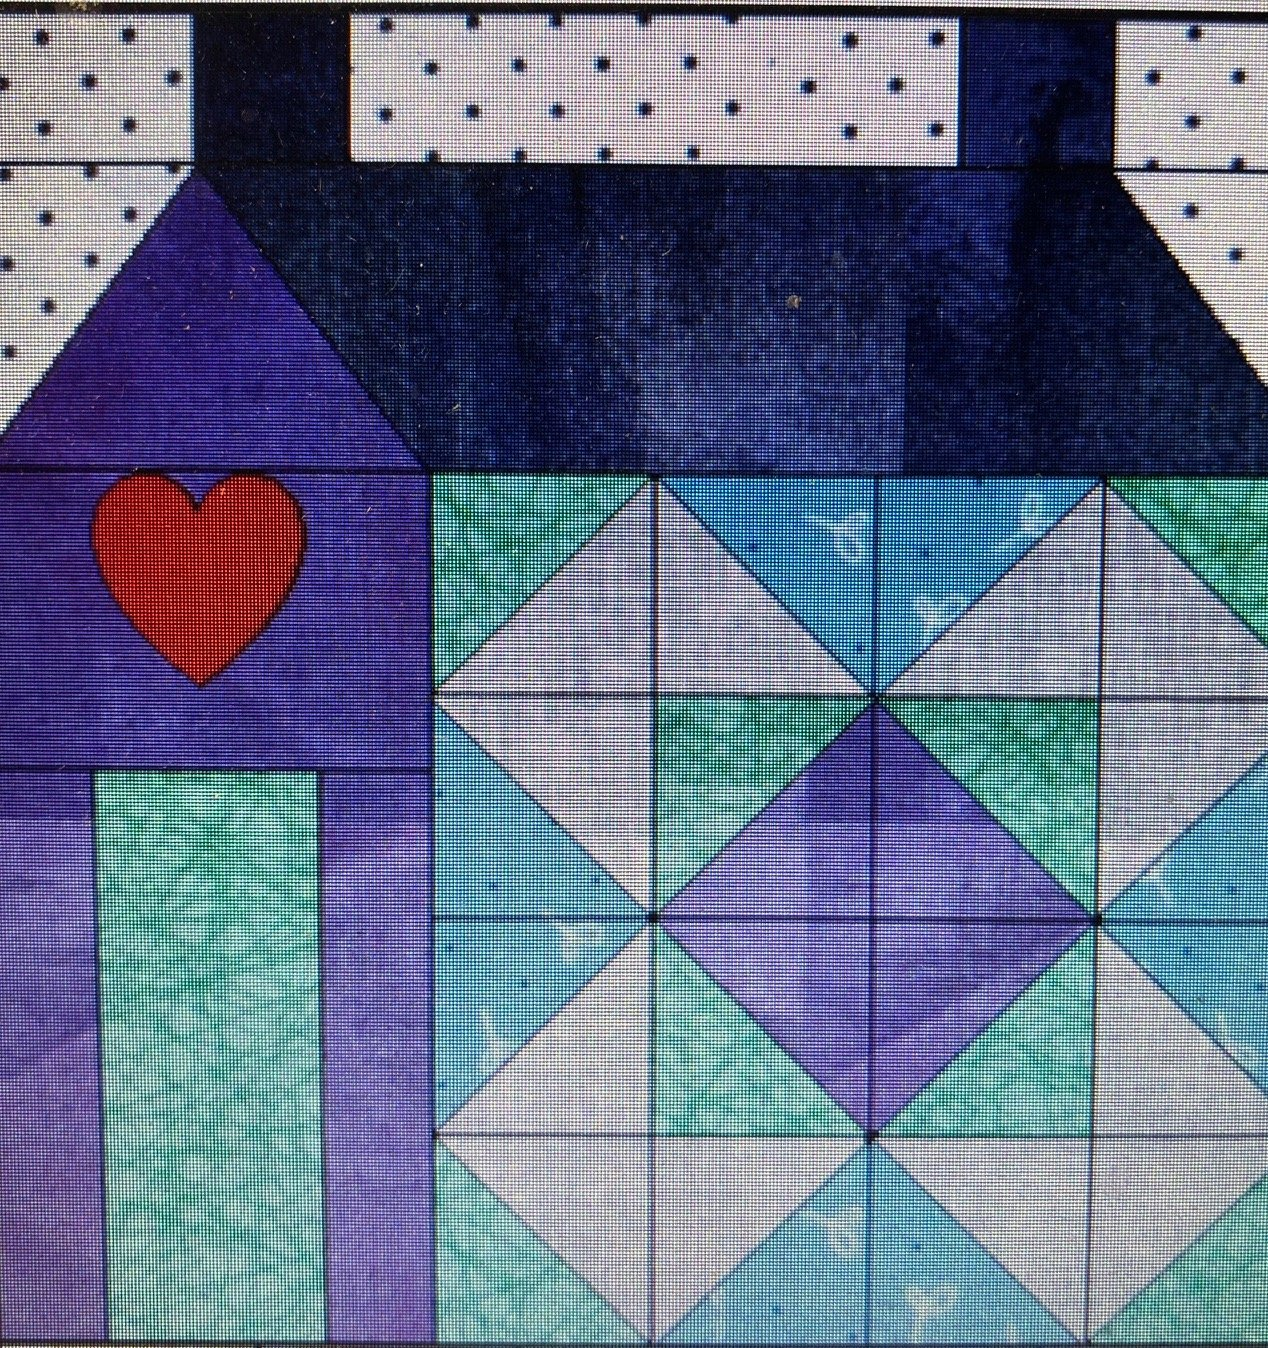 A Mosaic House Block 4 Kit